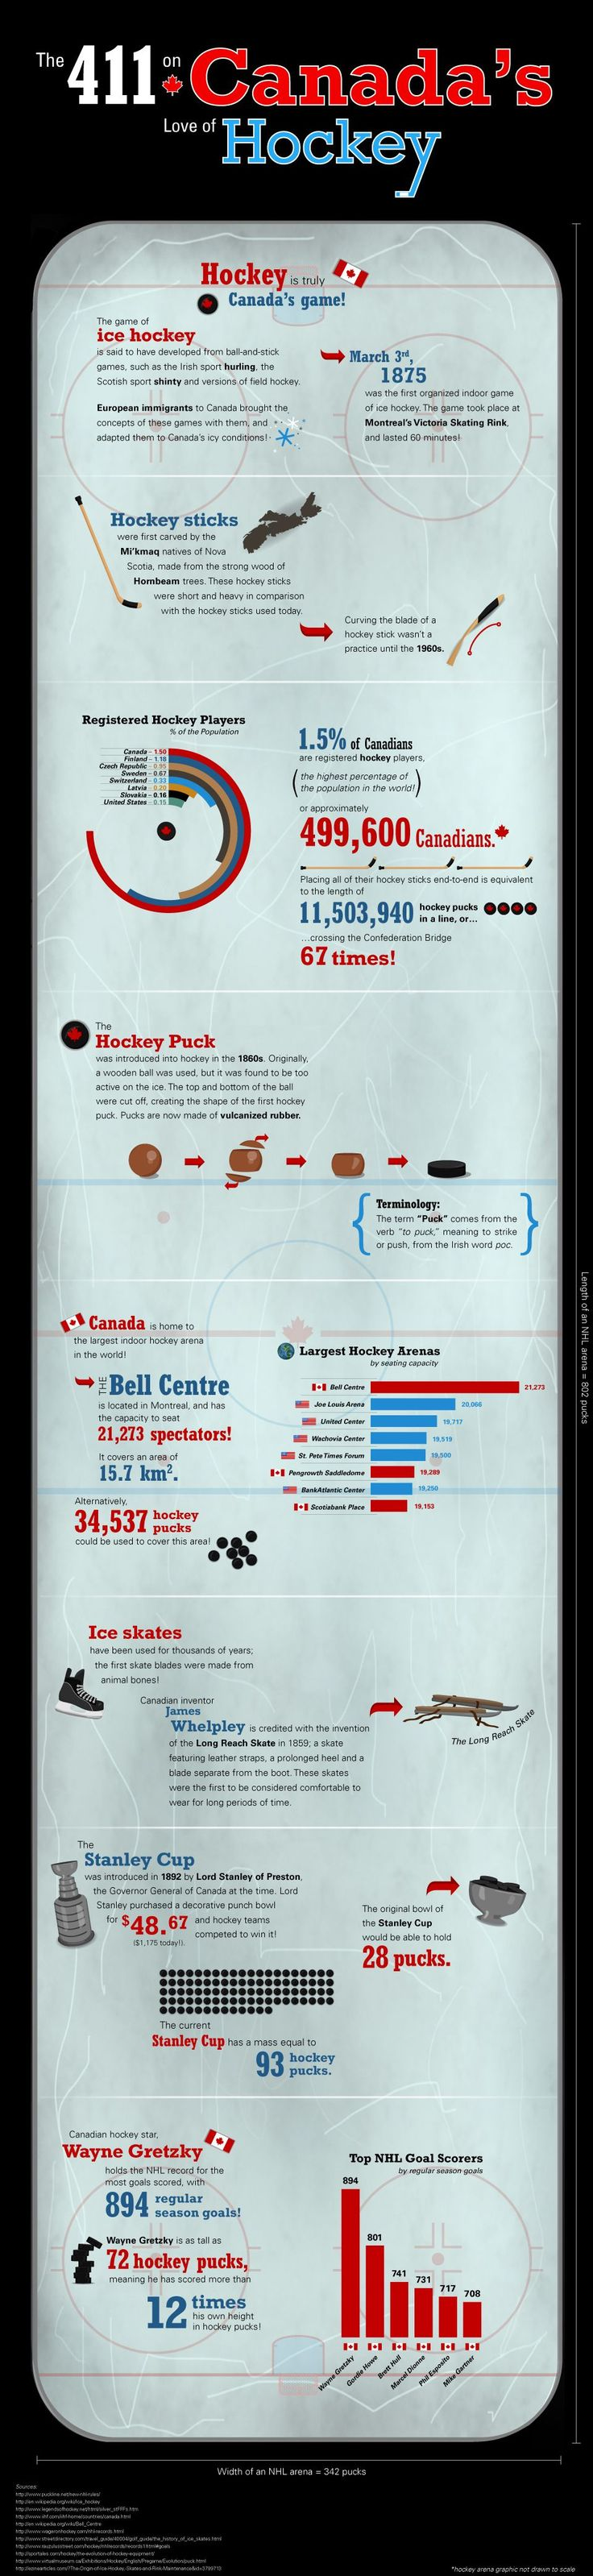 Canada Loves Hockey, but so does America. I just wish there was more hockey presence in my hometown of L.A.